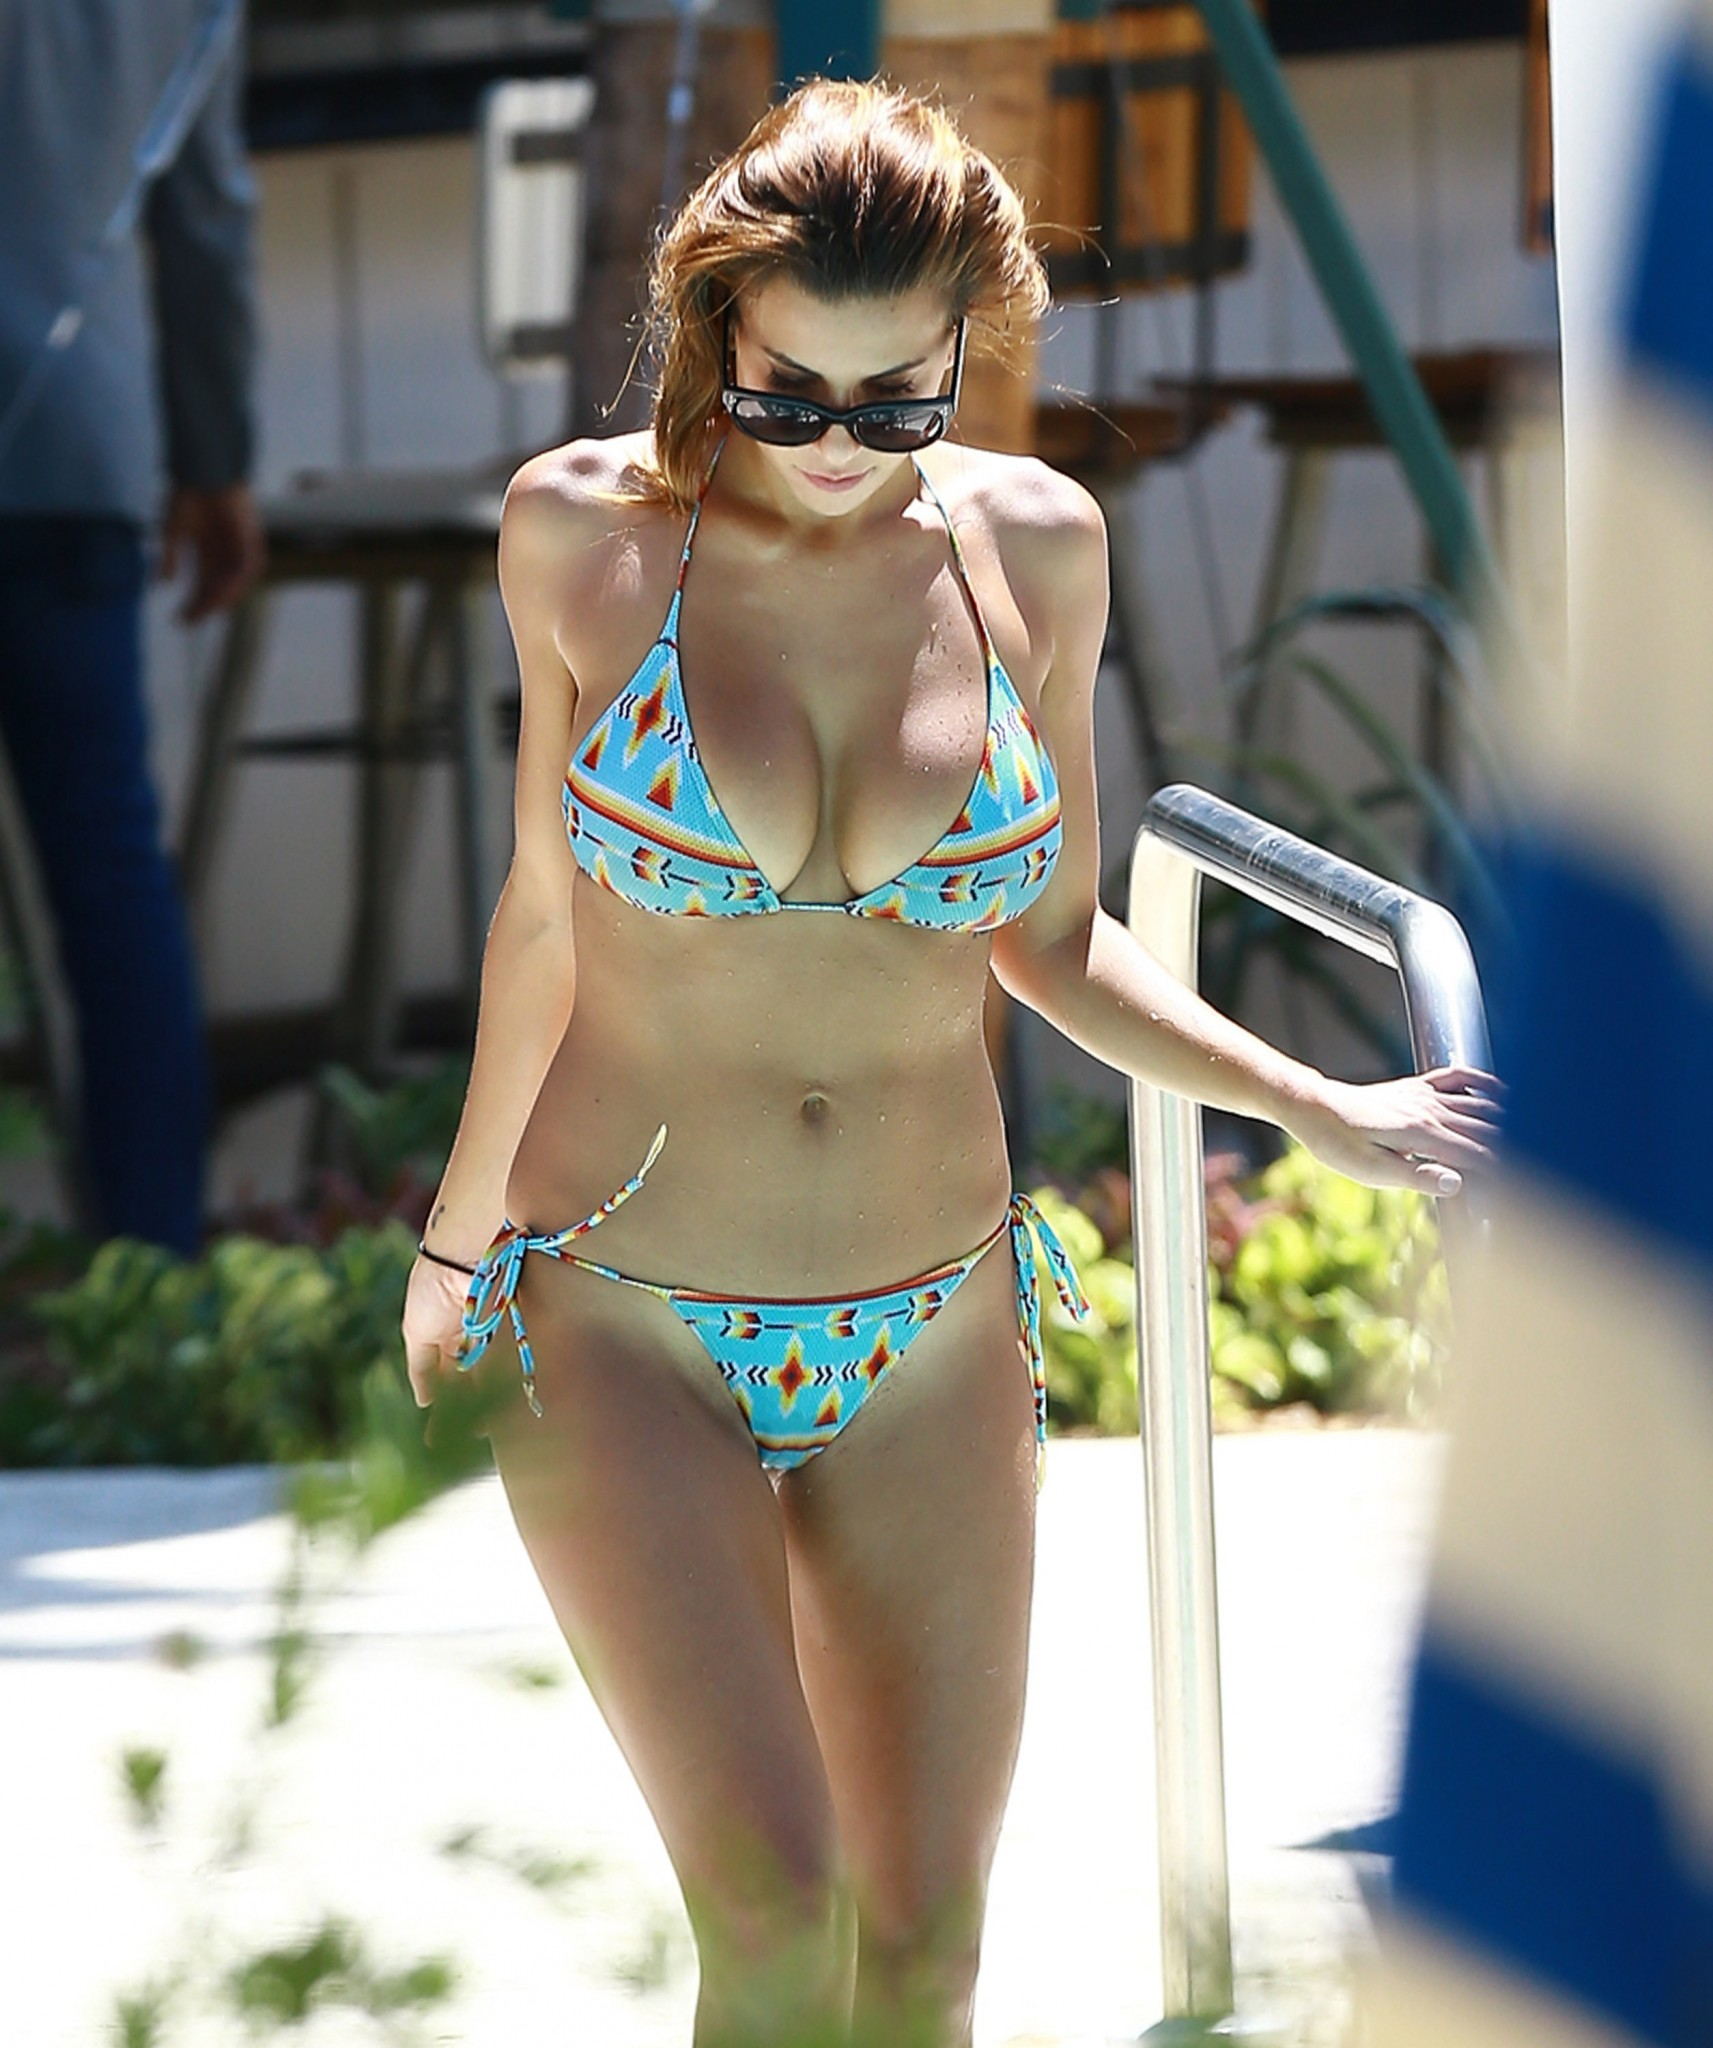 devin-brugman-natasha-oakley-wearing-a-bikini-at-a-pool-in-miami-17